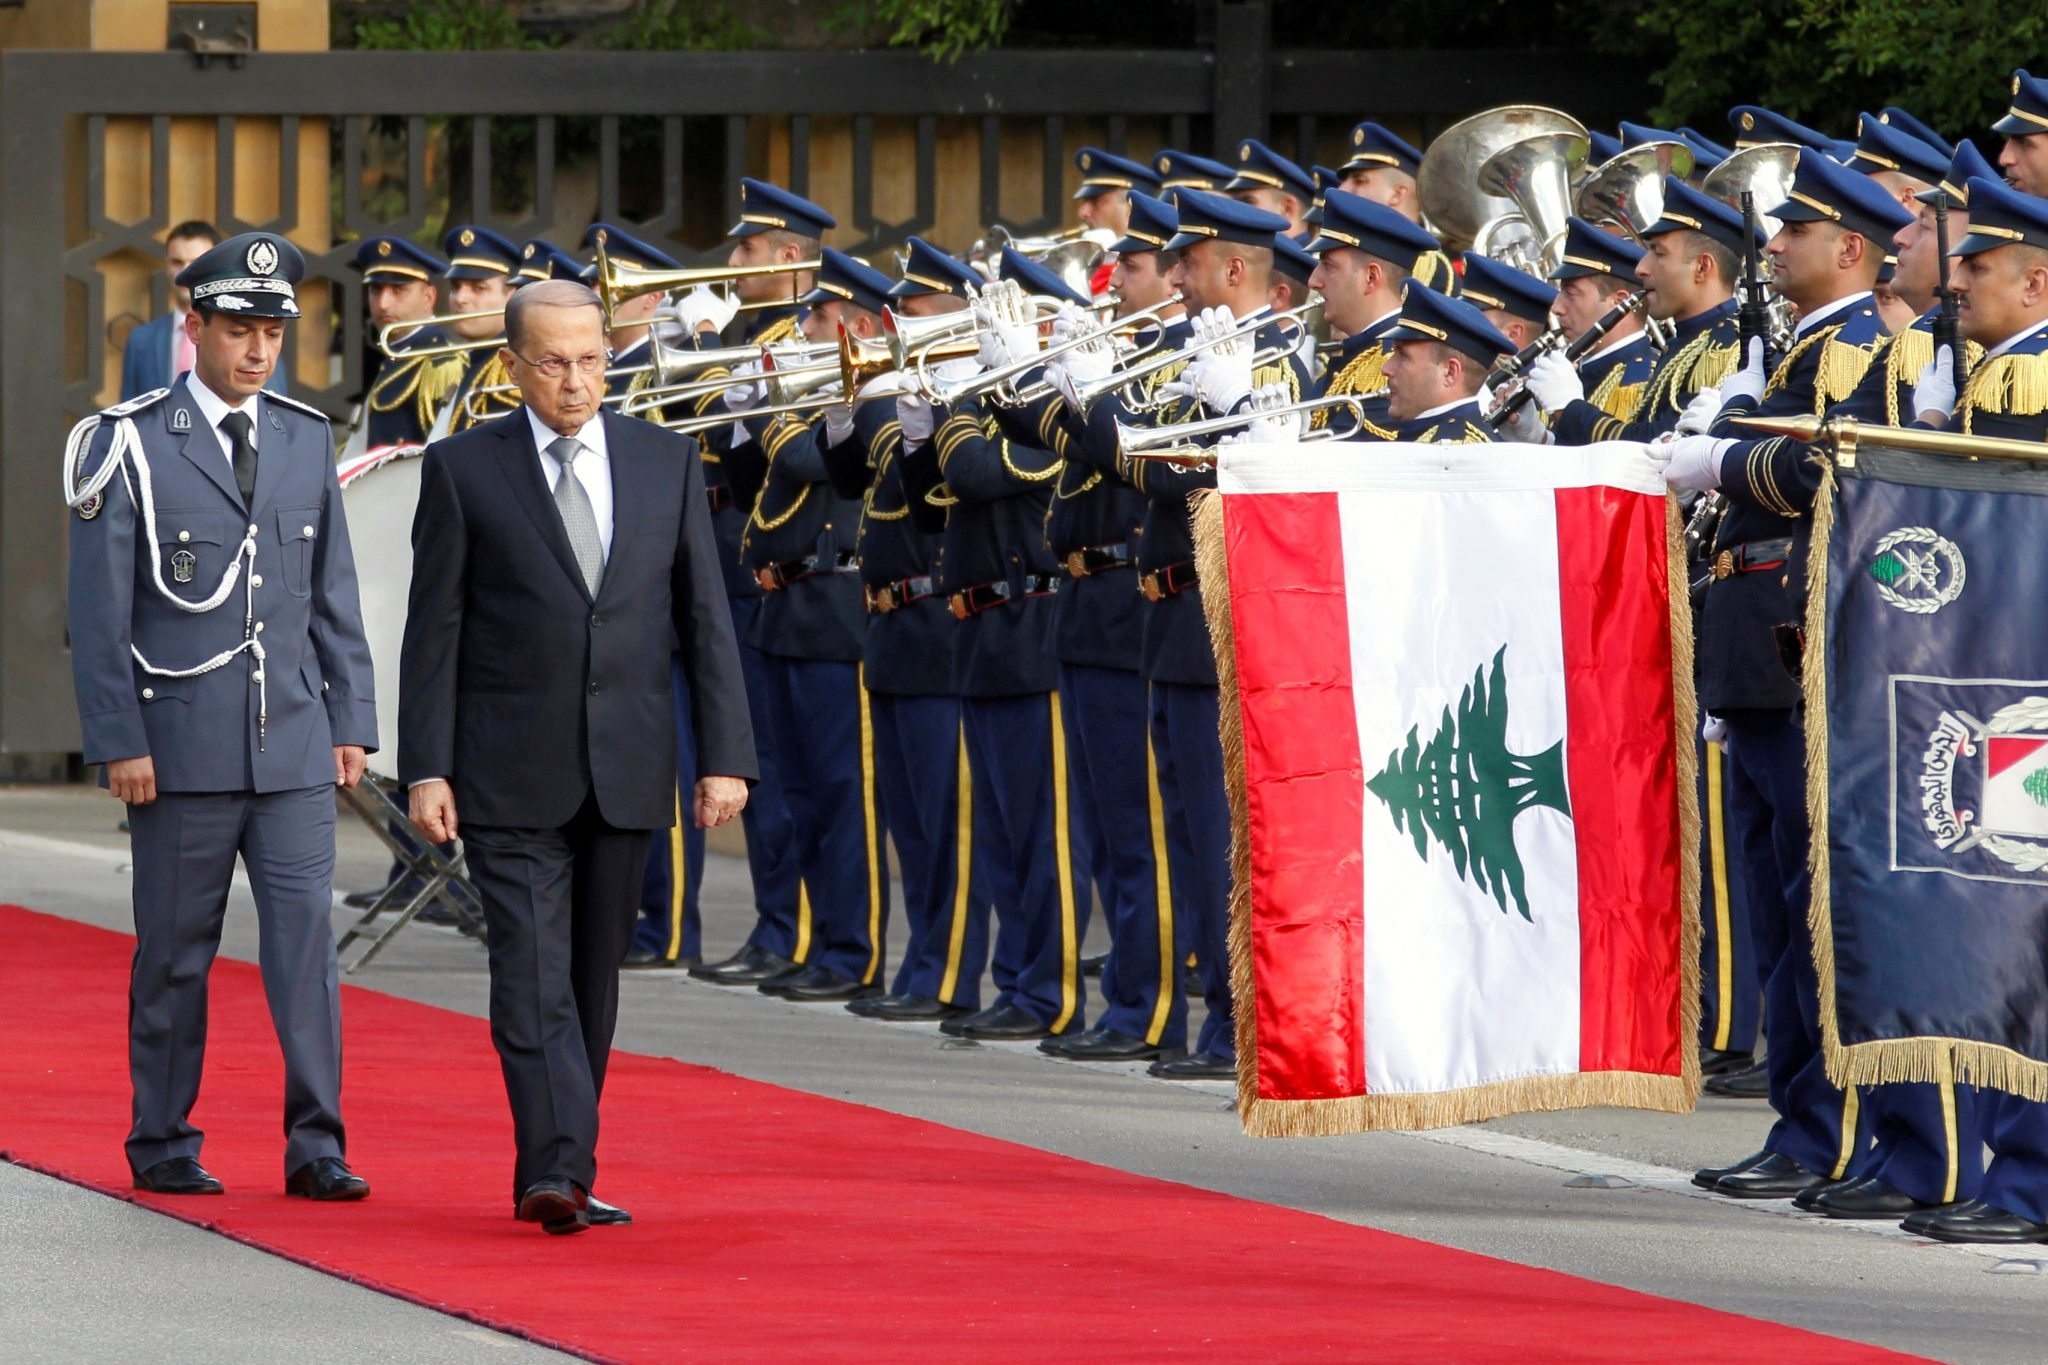 Lebanese newly elected president, Michel Aoun, reviews the honour guards upon arrival to the presidential palace in Baabda REUTERS